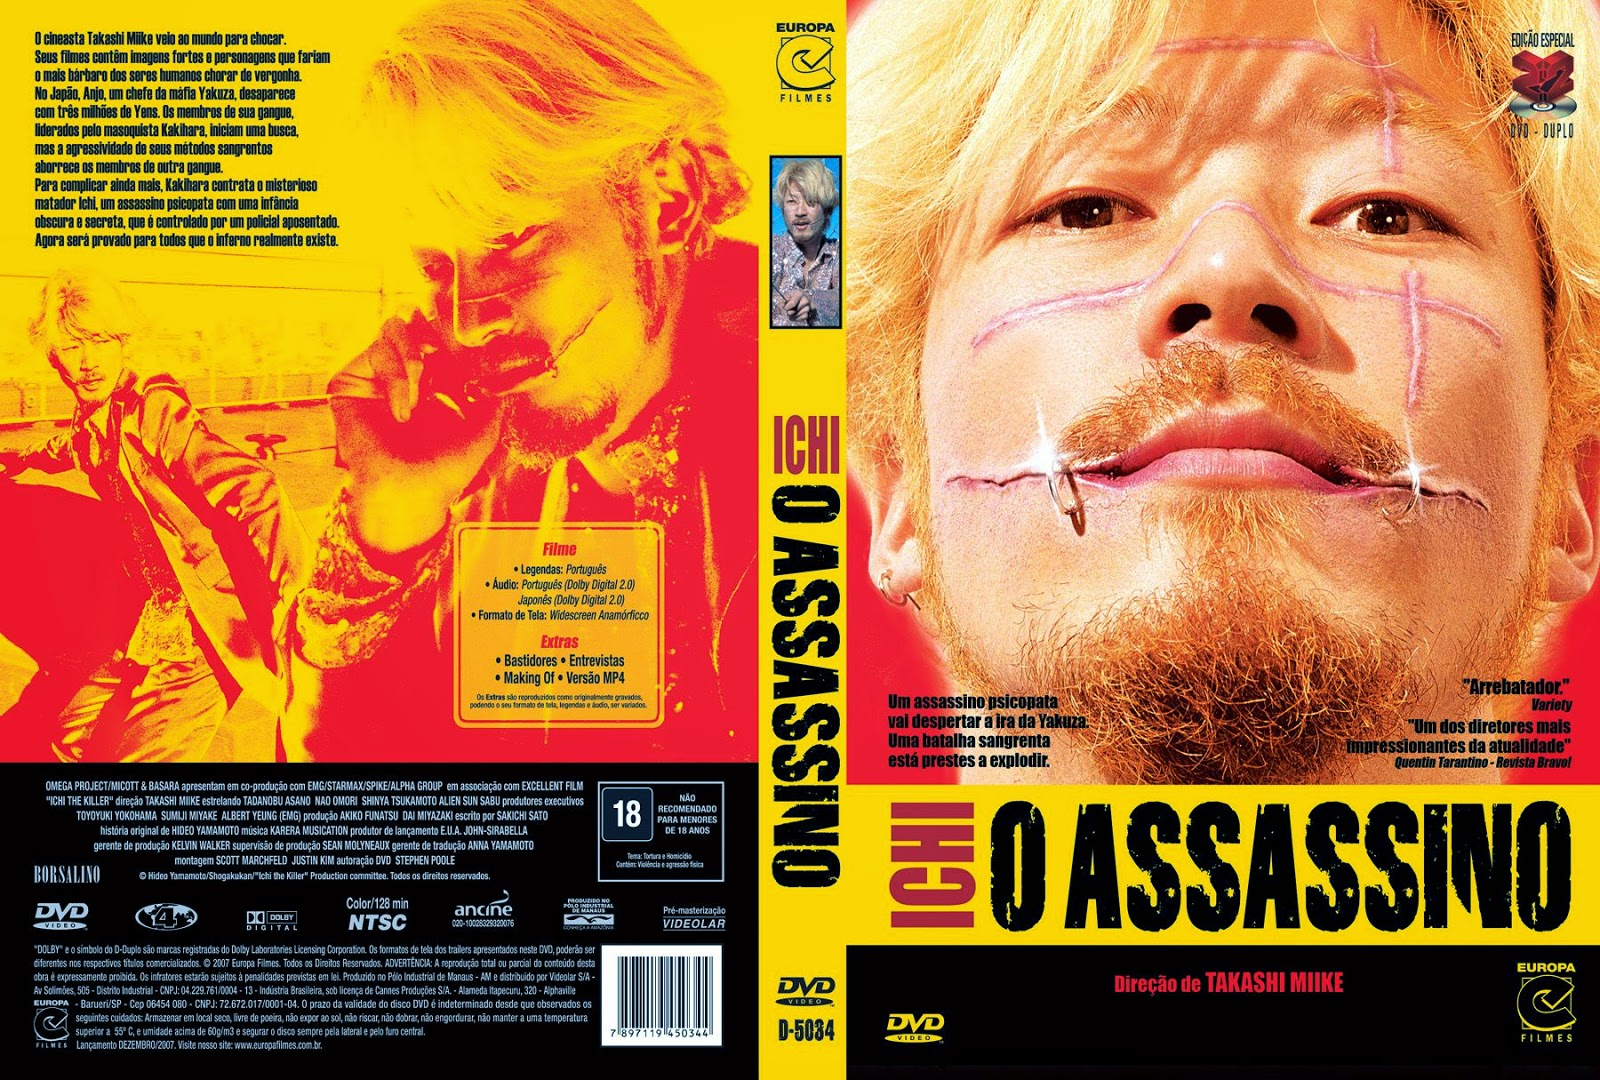 Capa DVD Ichi O Assassino